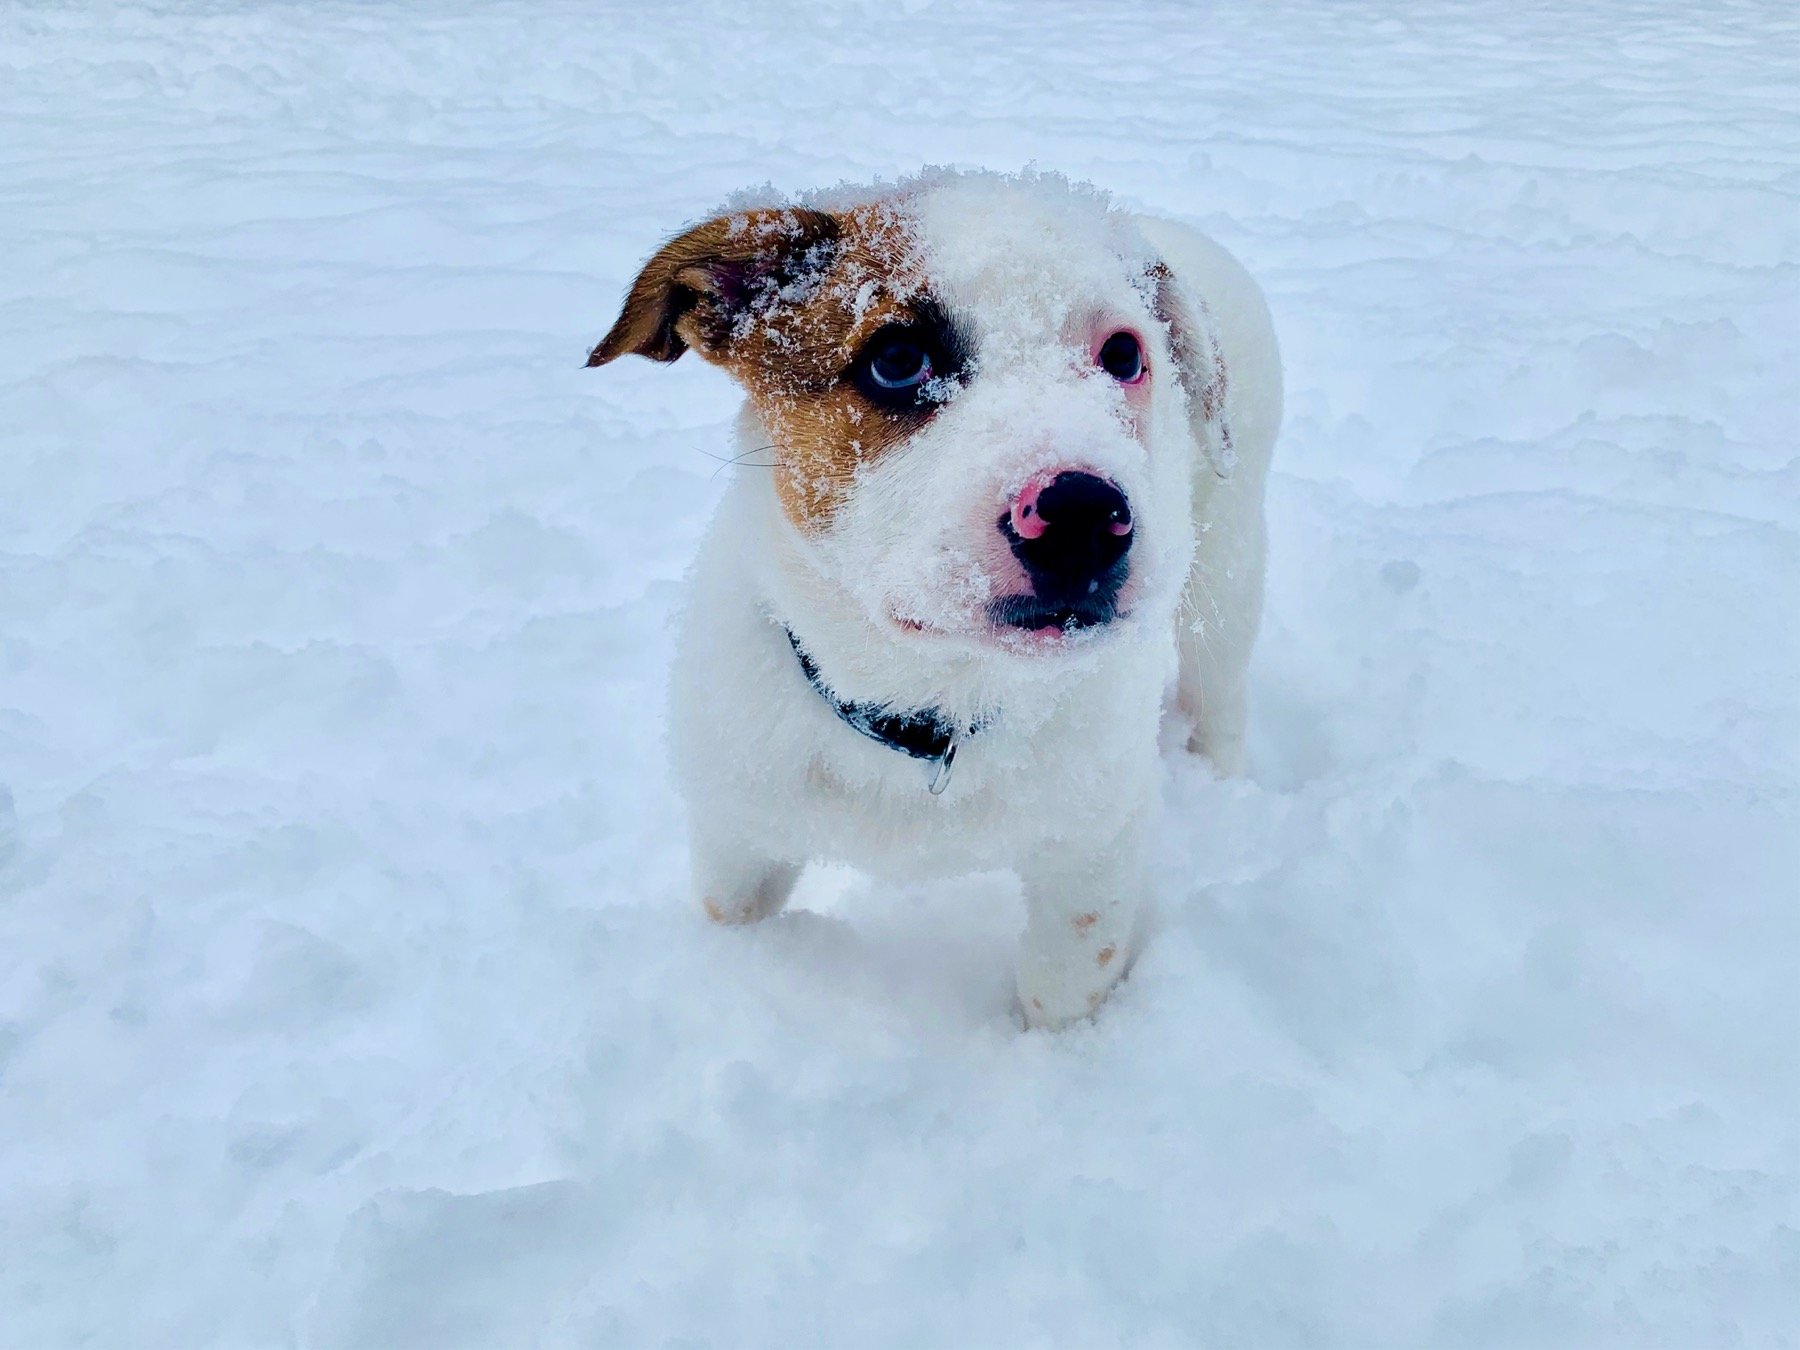 Billy in the Snow